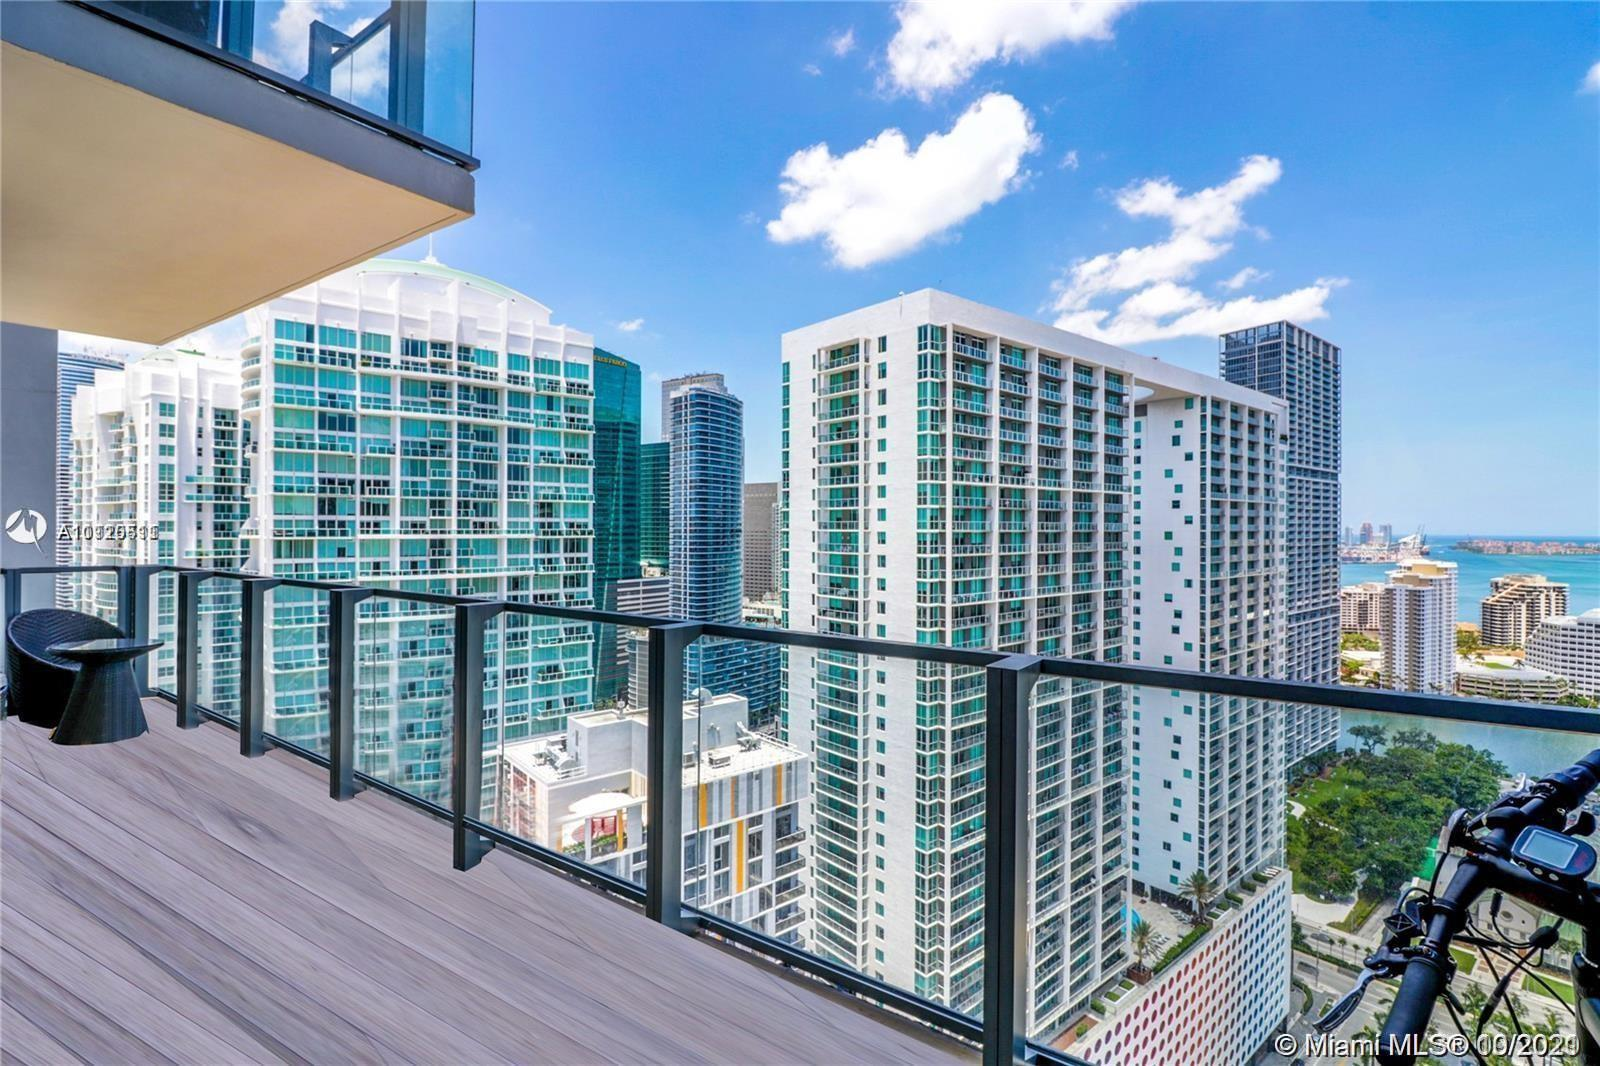 UNIT WITH SPECTACULAR INTER COASTAL AND BRICKELL SKYLINE CITY VIEWS. UNIT FEATURES 2 BEDROOMS, 2.5 B